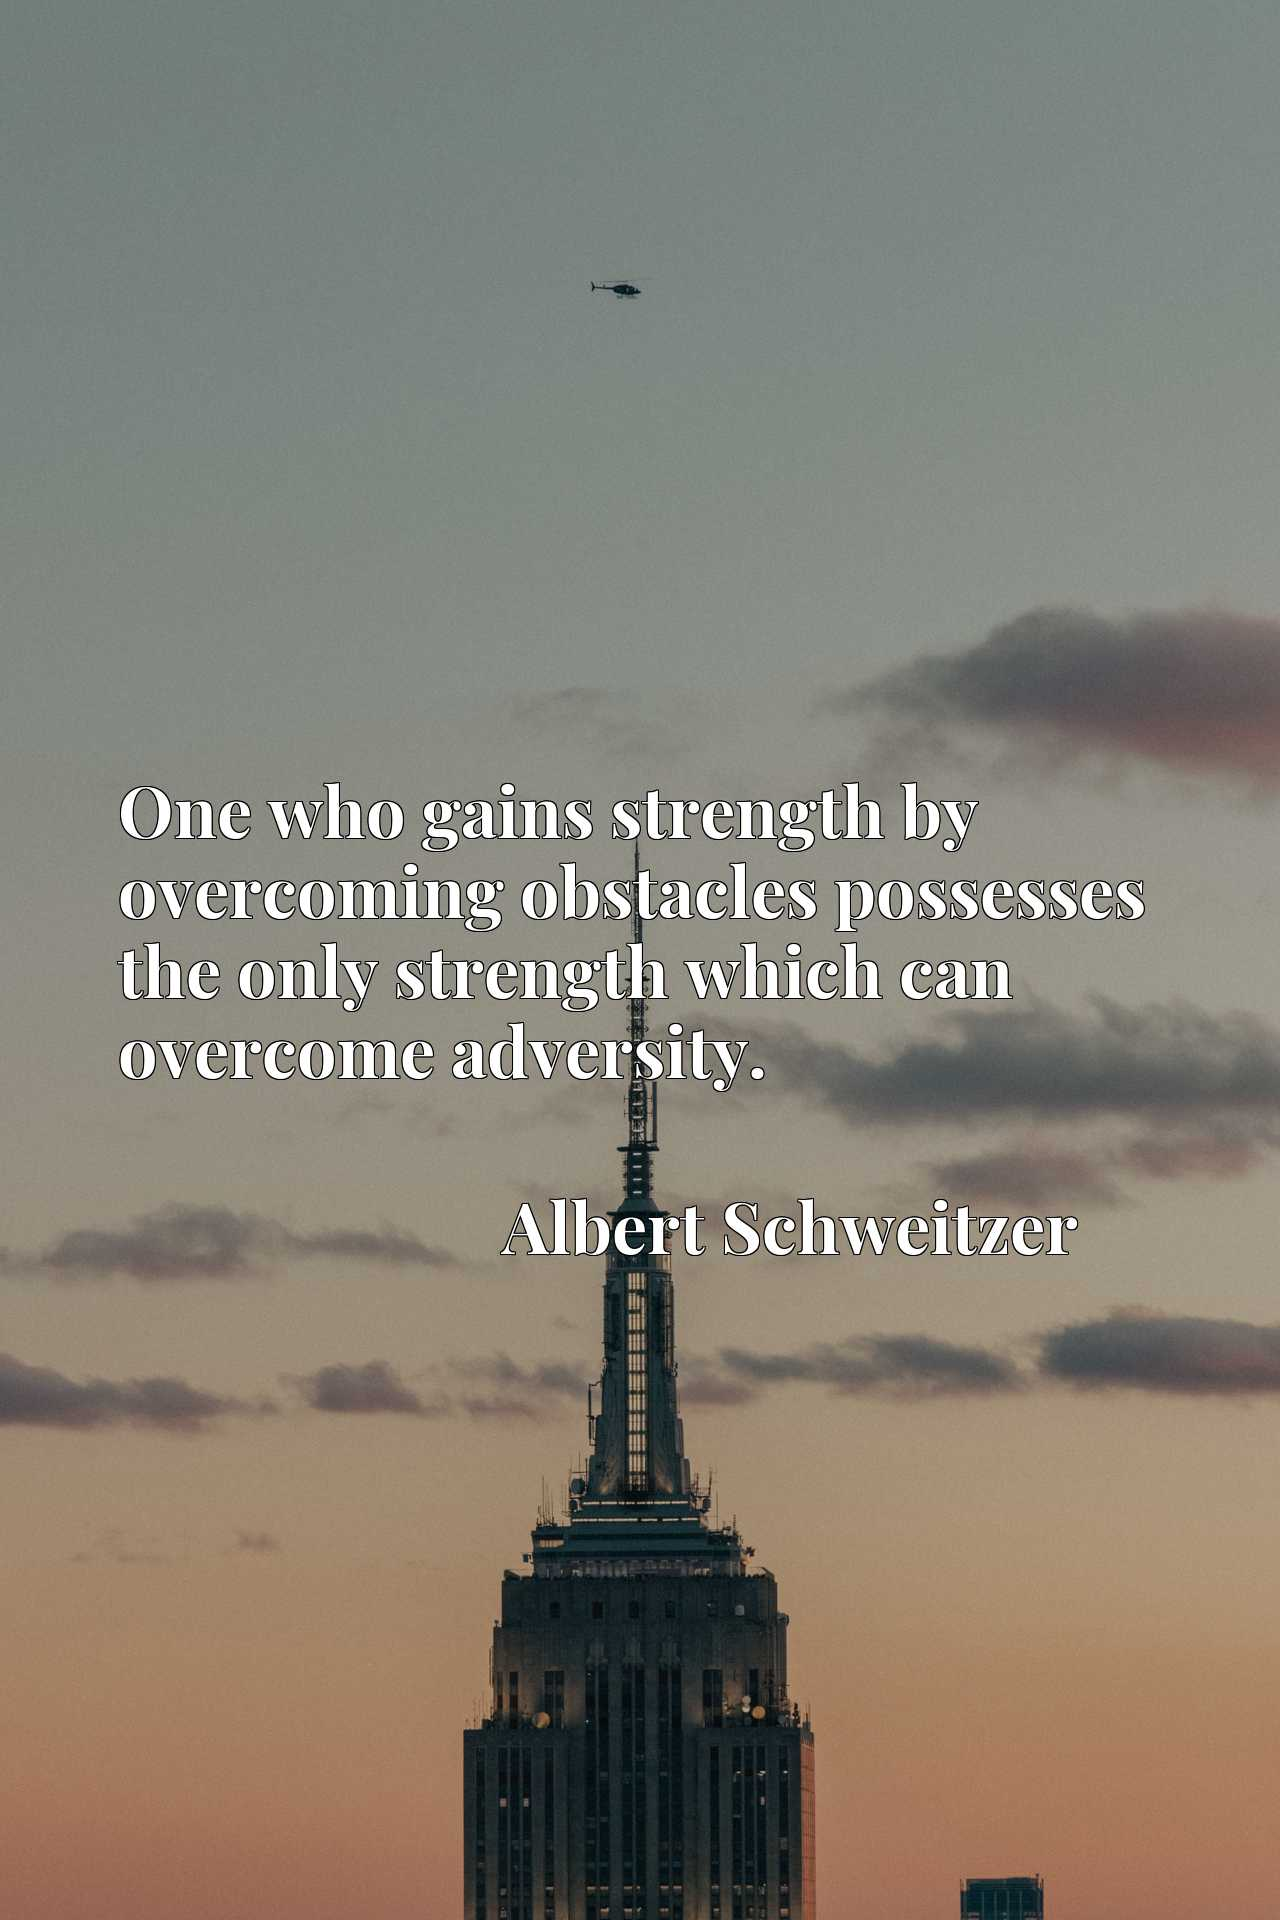 One who gains strength by overcoming obstacles possesses the only strength which can overcome adversity.